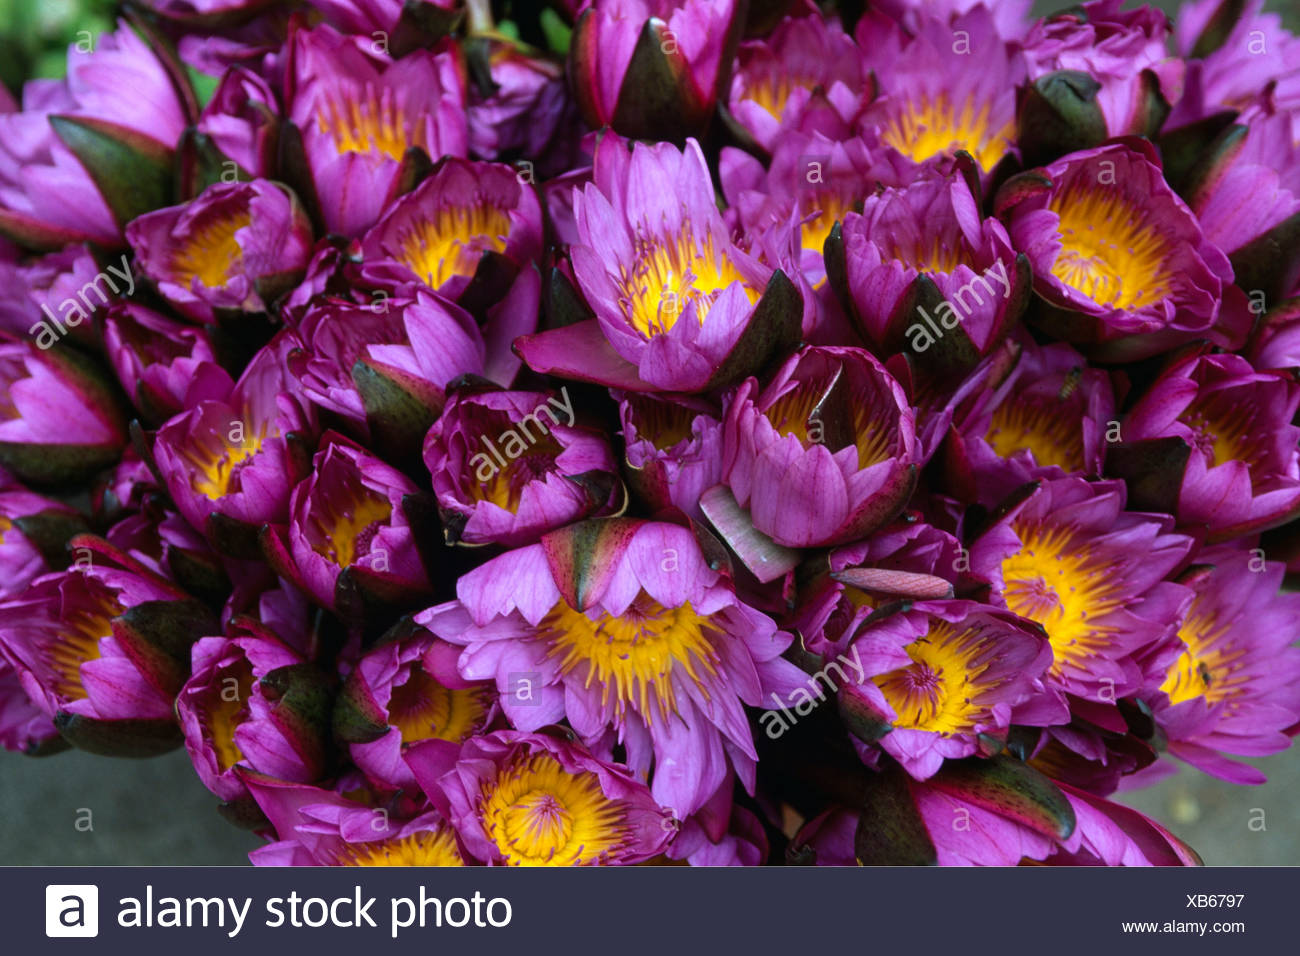 Lotus blossoms as oblation, offering at the Sri Dalada Maligawa, The Temple of the Tooth in Kandy, Sri Lanka, Asia - Stock Image